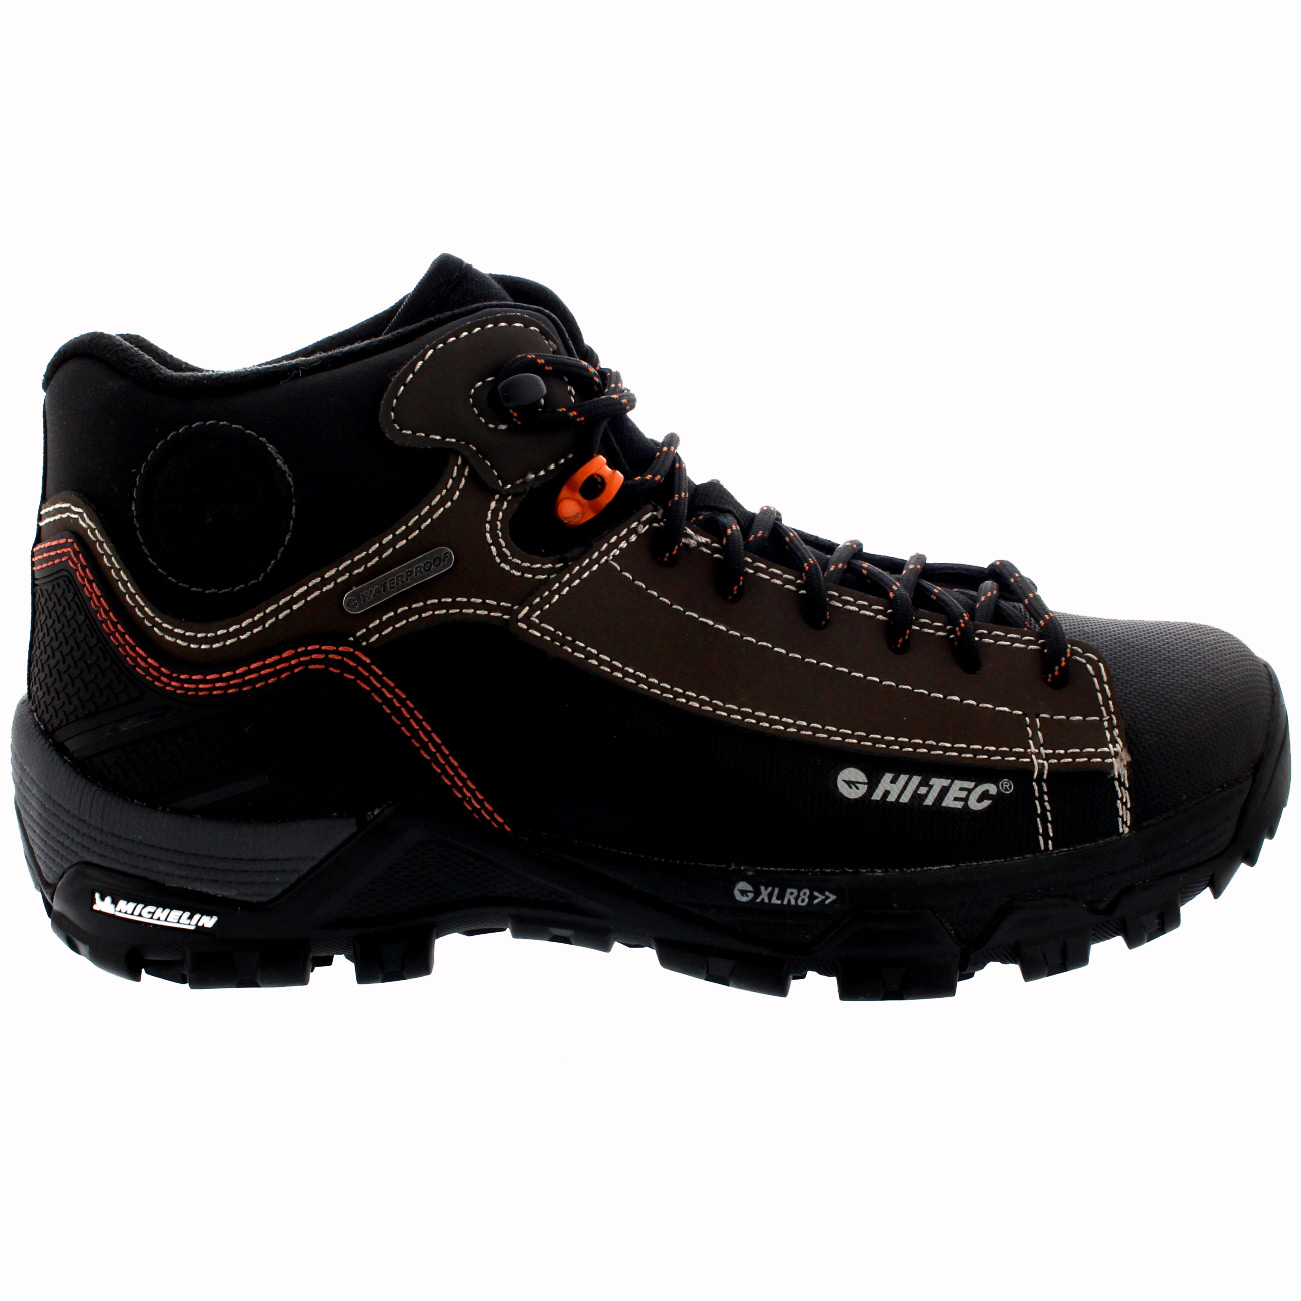 Mens Hi-Tec Trail Ox Chukka Outdoors Hiking Trail Waterproof Ankle ...